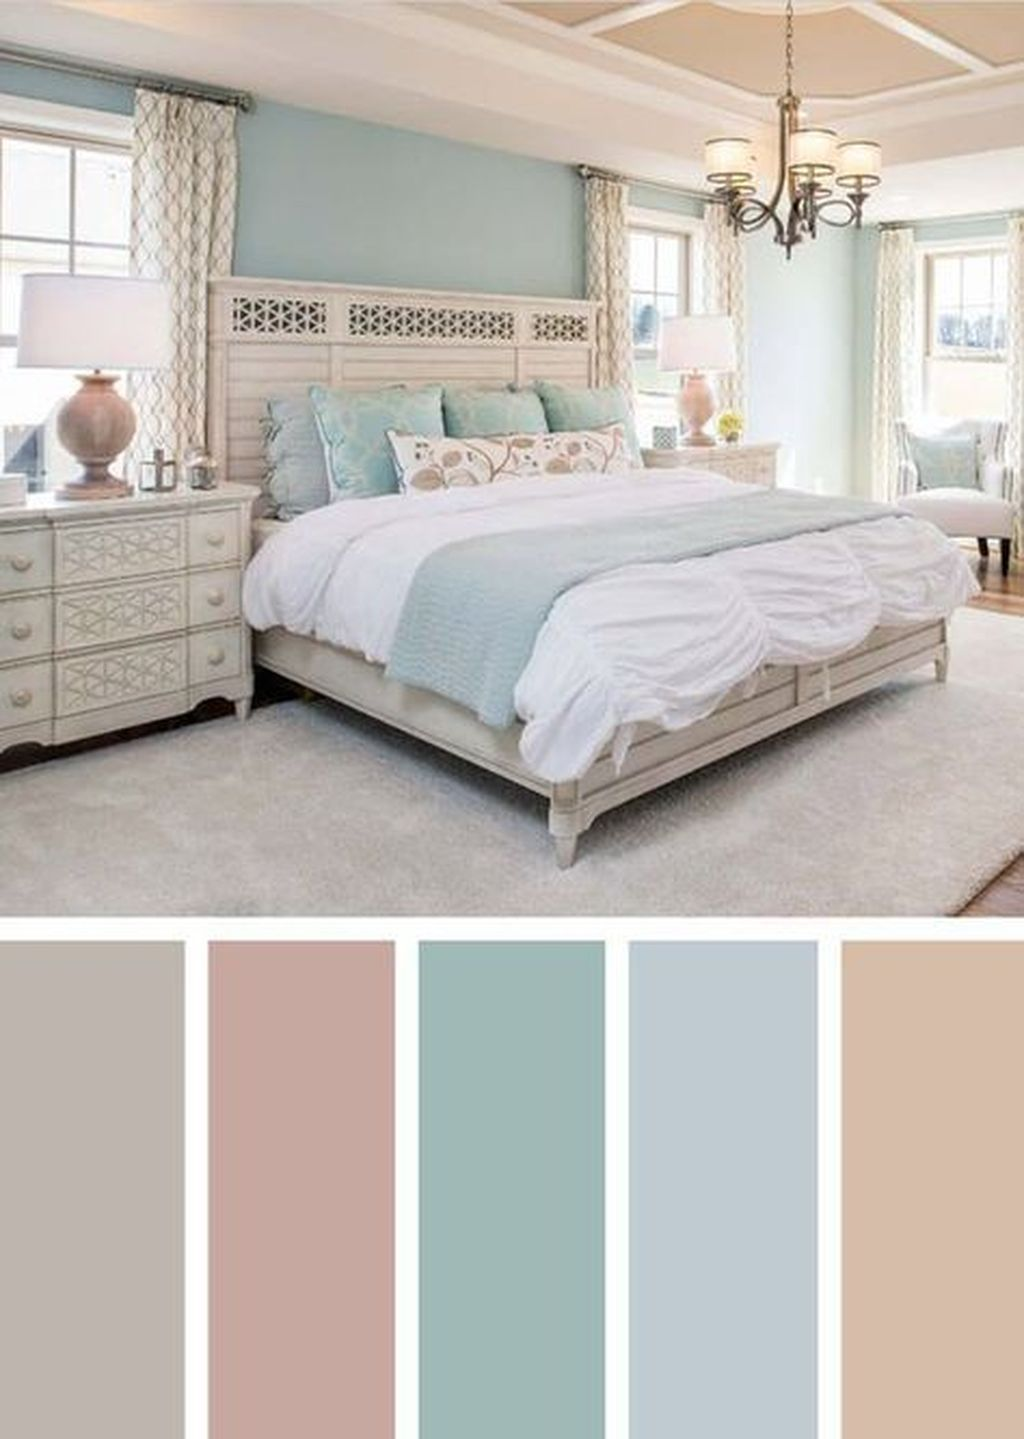 5 Ways How To Decor Your Bedroom With Romantic Bedroom Ideas In 2020 Bedroom Color Schemes Best Bedroom Colors Master Bedroom Colors